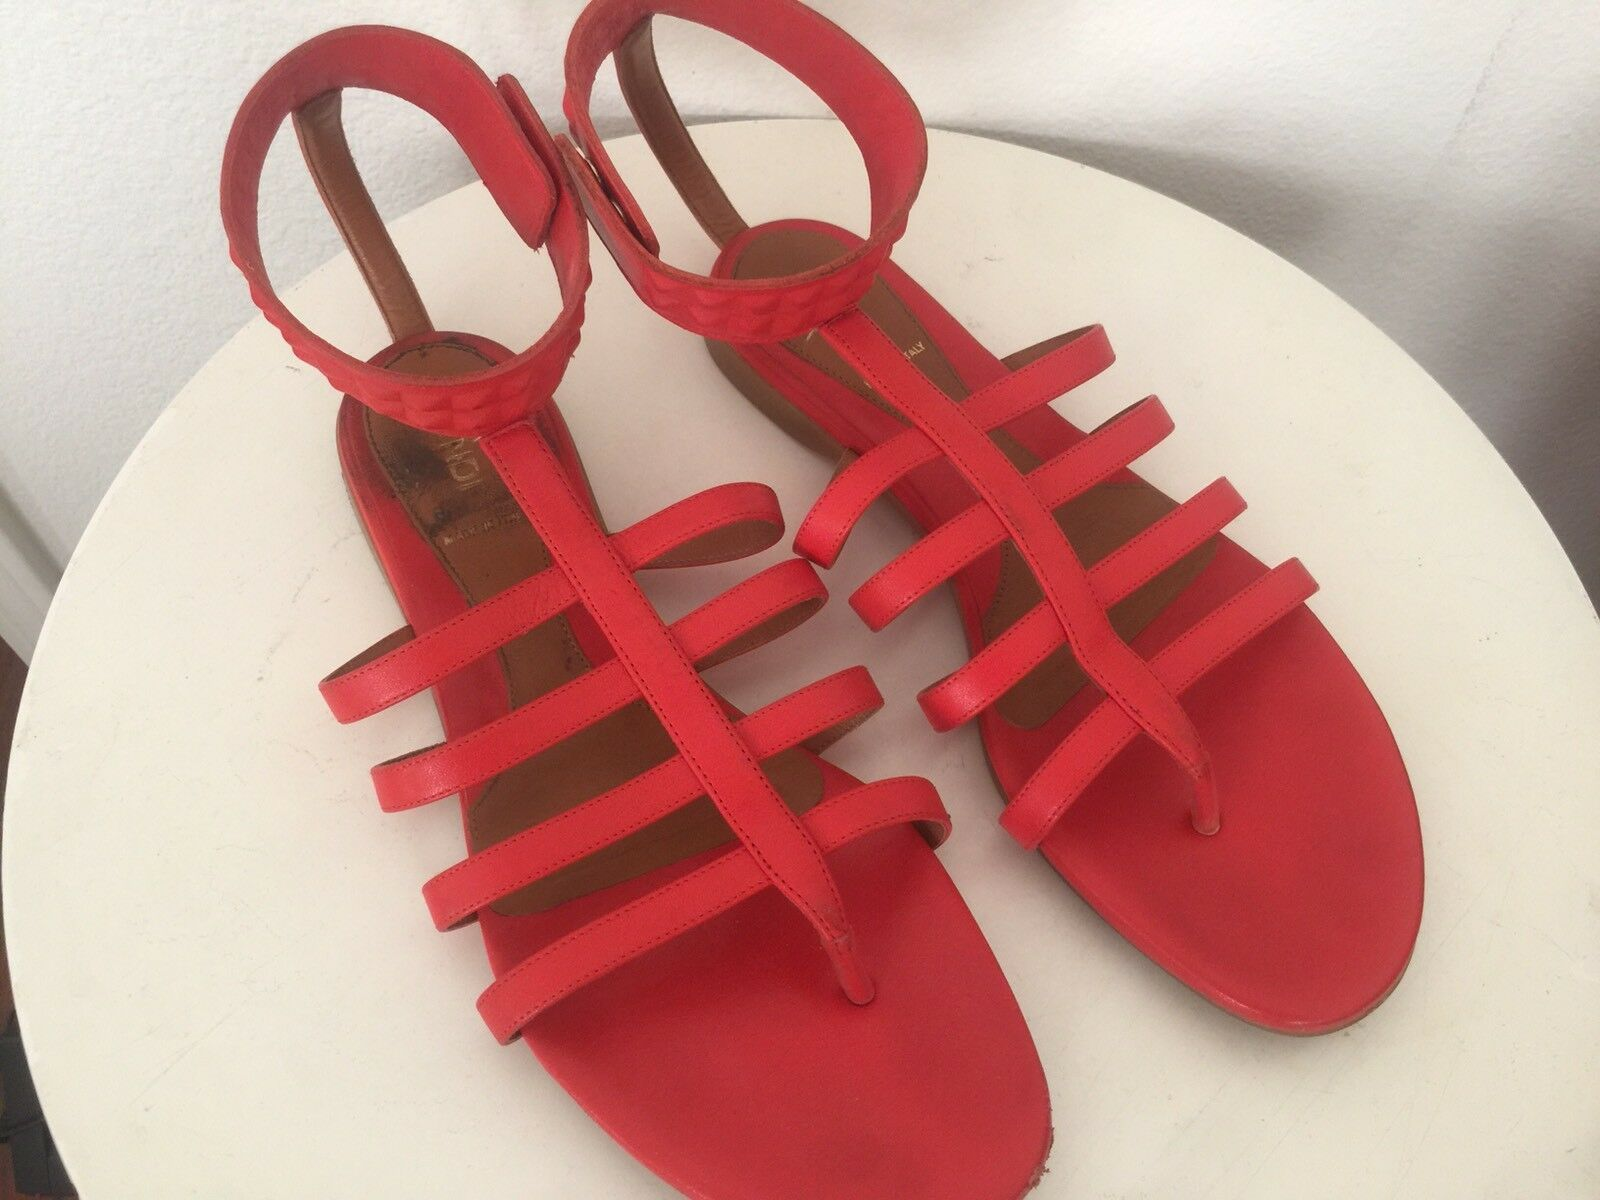 FENDI Fab orange Citrus Leather Gladiator Strappy Sandal shoes 39.5 US  750